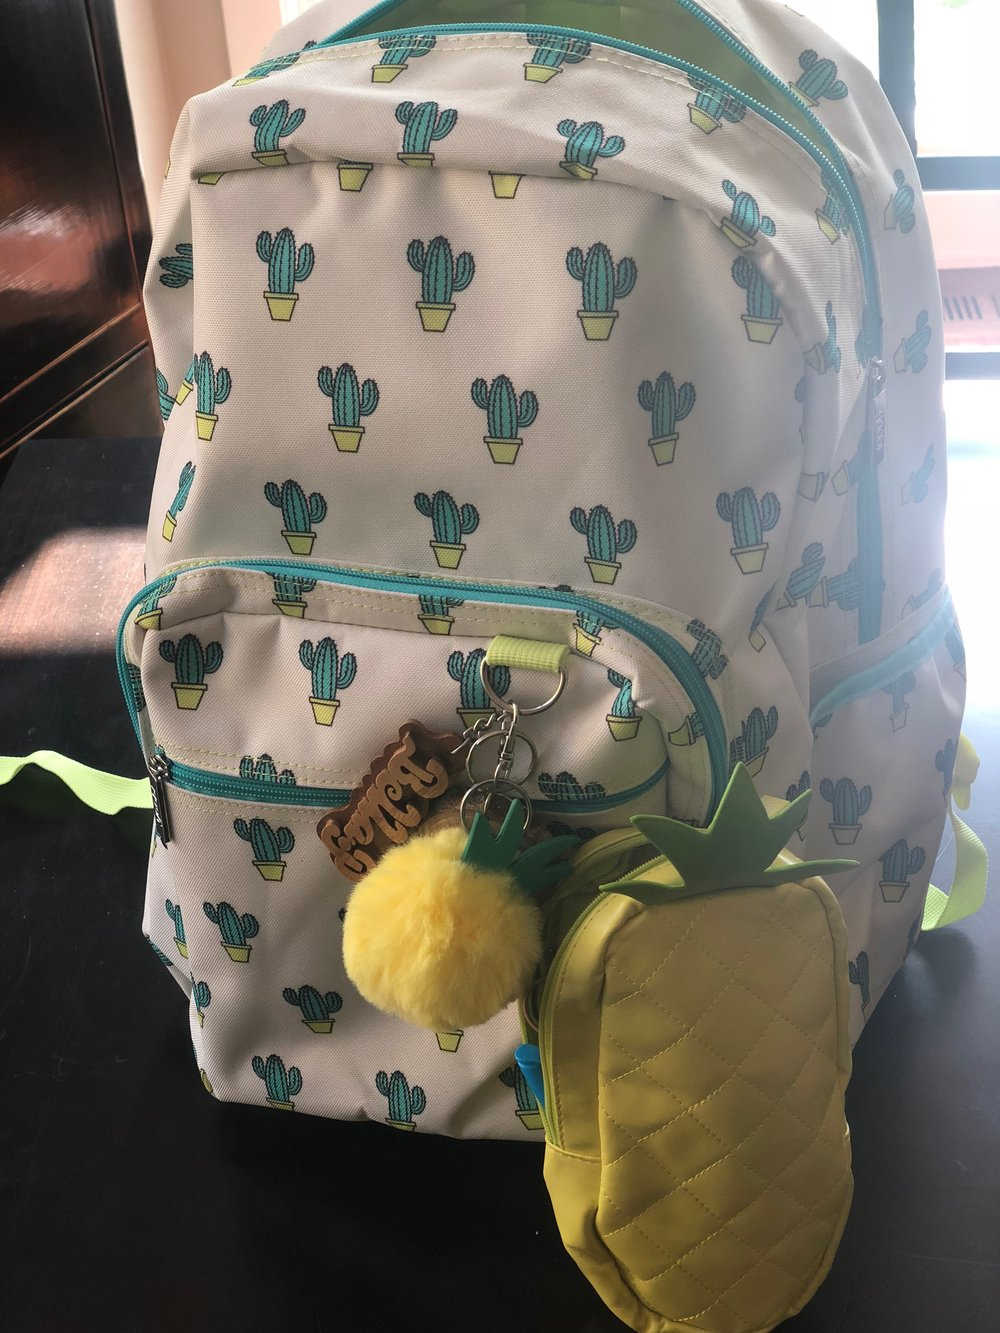 My kids do not have to bring school supplies but I always stock up for my own desk at home because the prices are too good to pass up. This year she chose a cactus theme backpack with a pineapple pencil case that holds her ear buds and some fun highlighters.